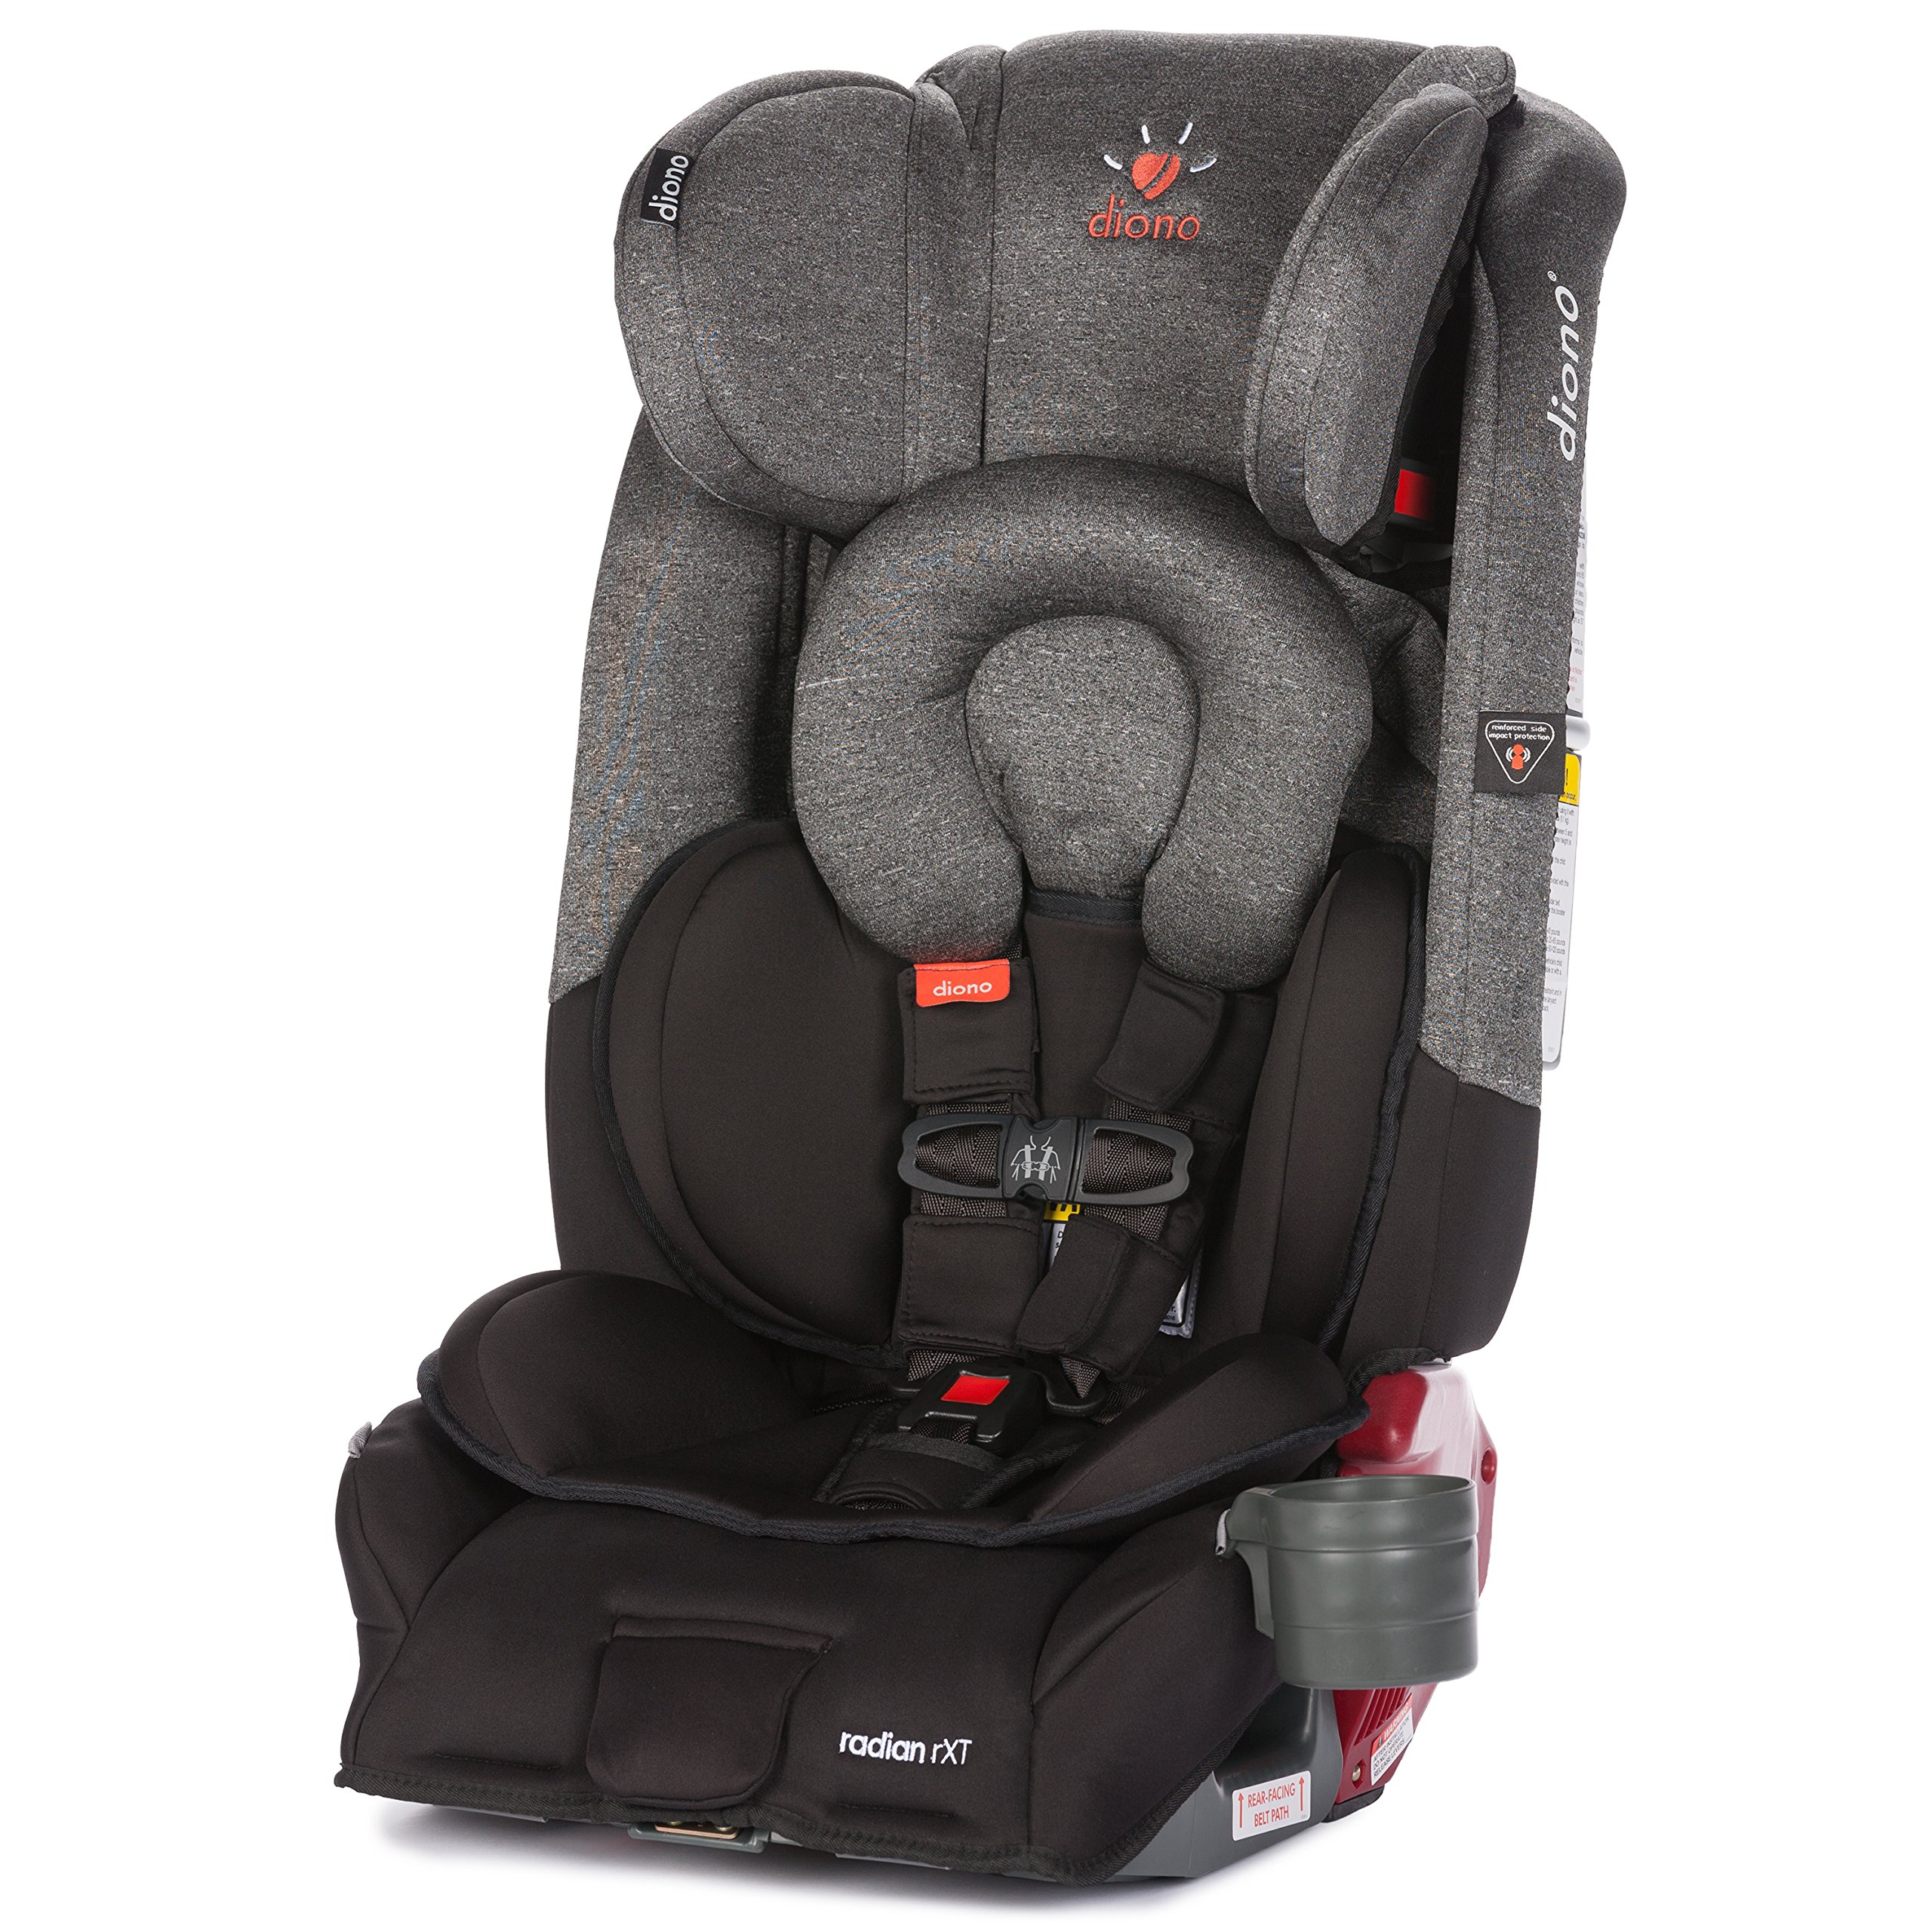 diono monterey xt booster car seat 40 120 lbs baby. Black Bedroom Furniture Sets. Home Design Ideas